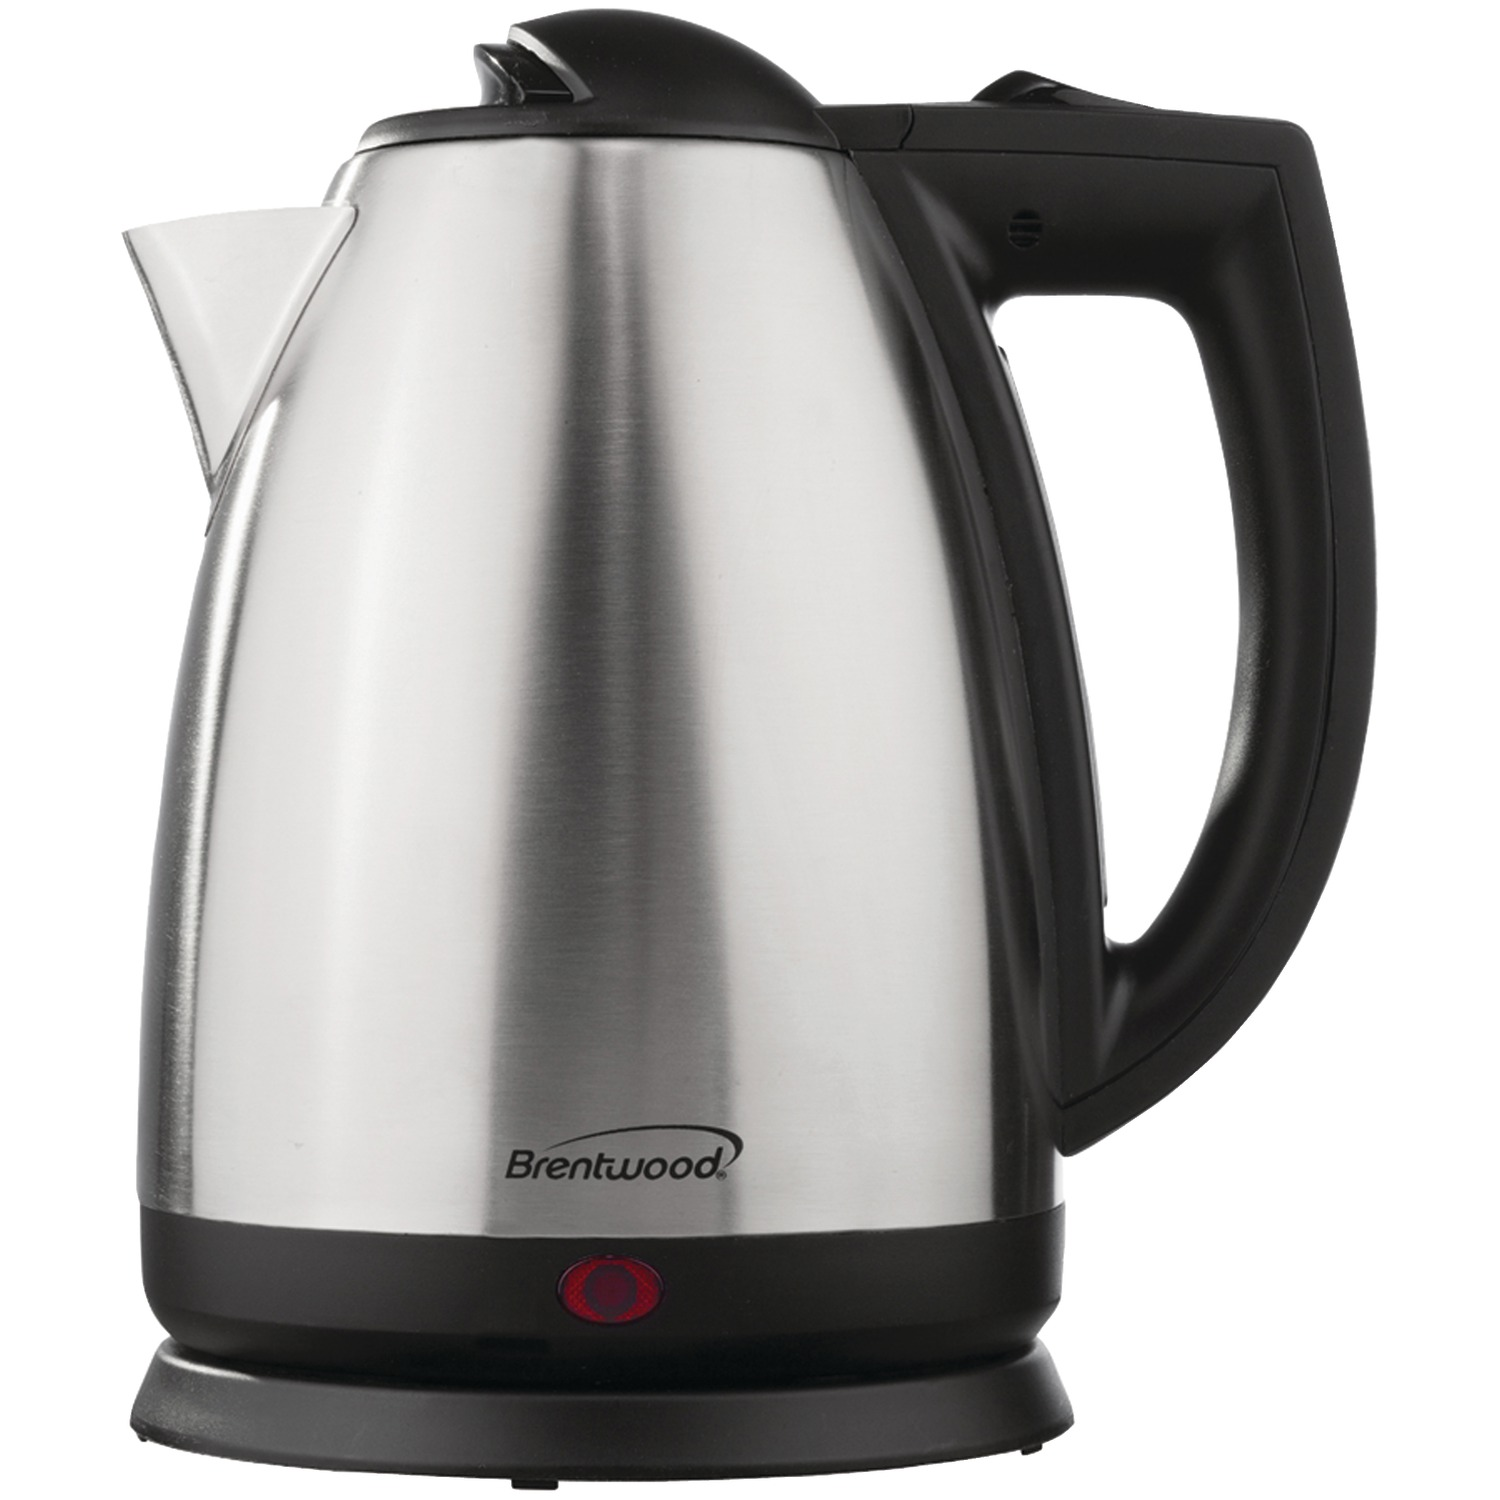 Brentwood Appliances KT 1800 2l Stainless Steel Electric Cordless Tea Kettle